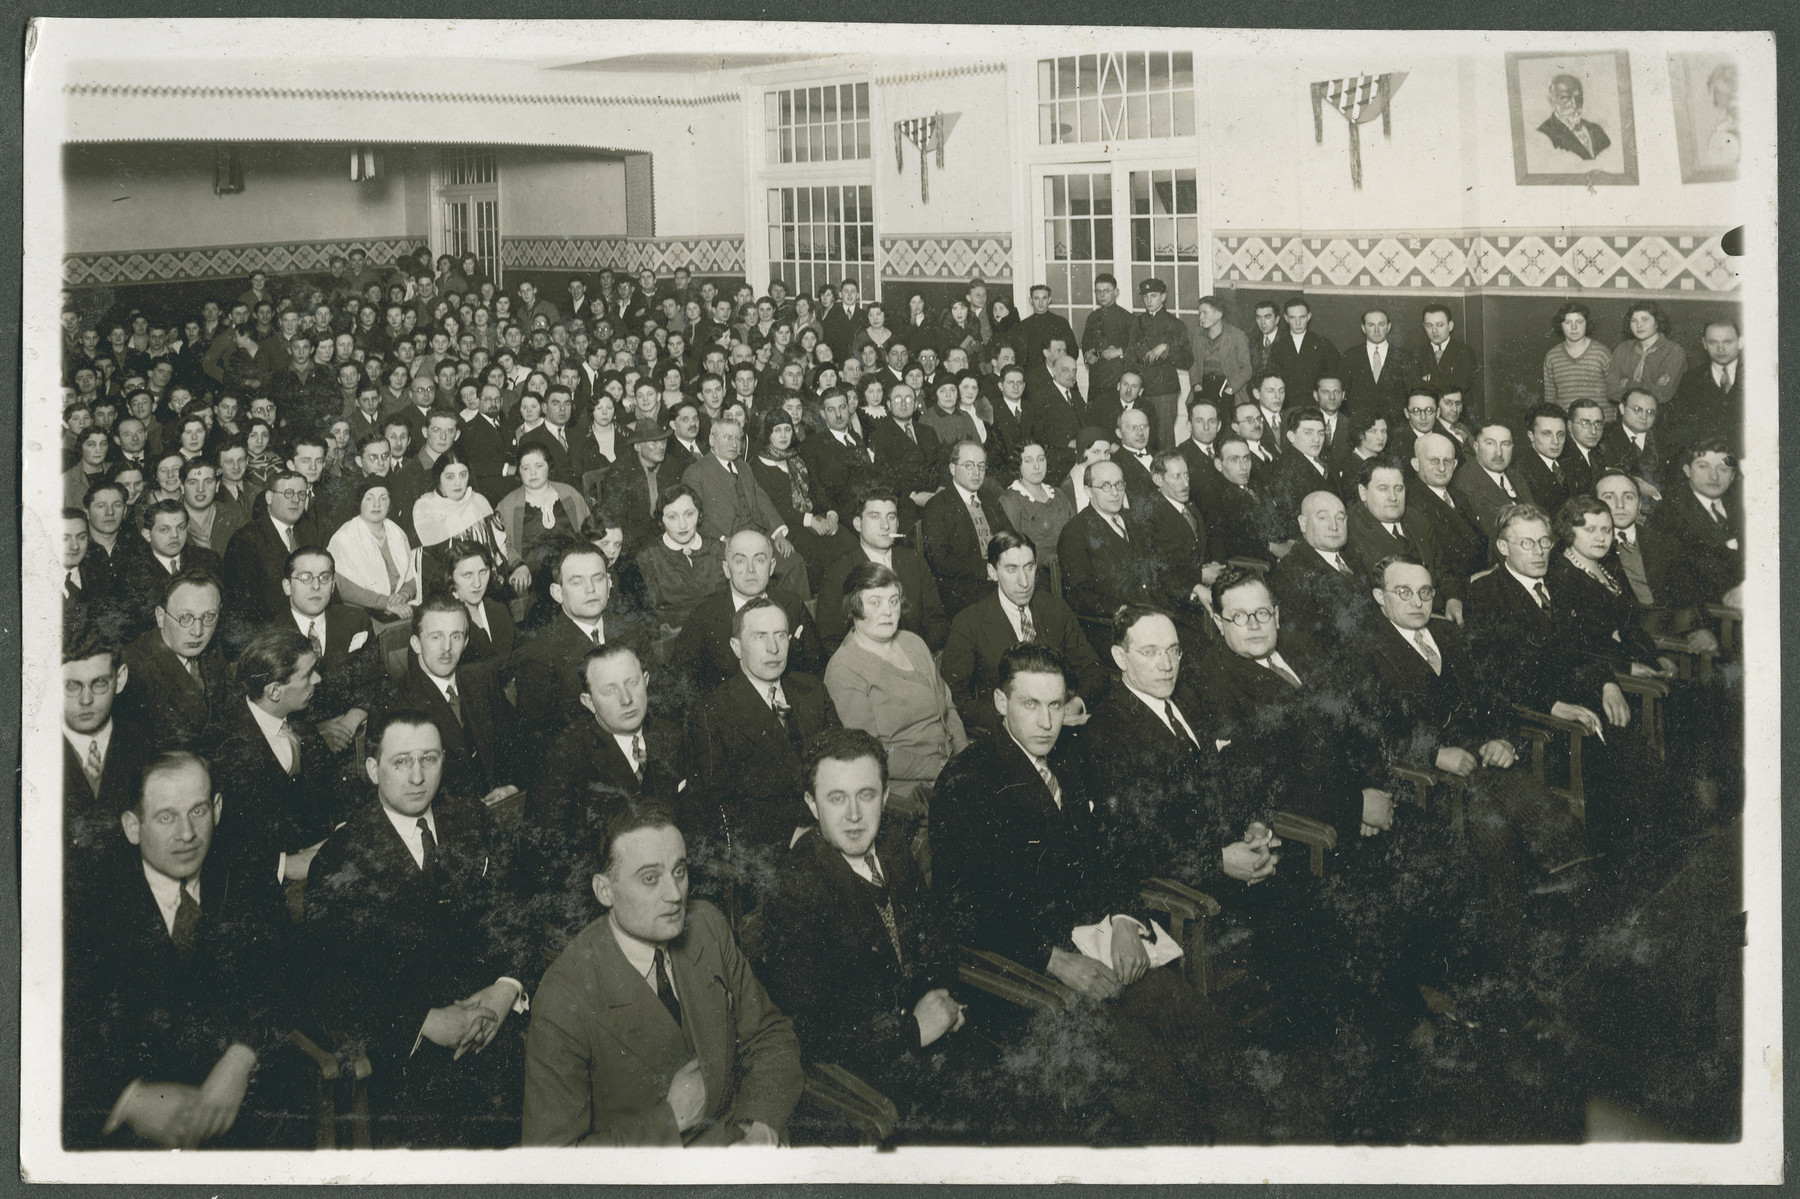 Delegates to what is probably the 12th Zionist Congress.  Samuel Gotz is pictured in the second row, sixth from the right.